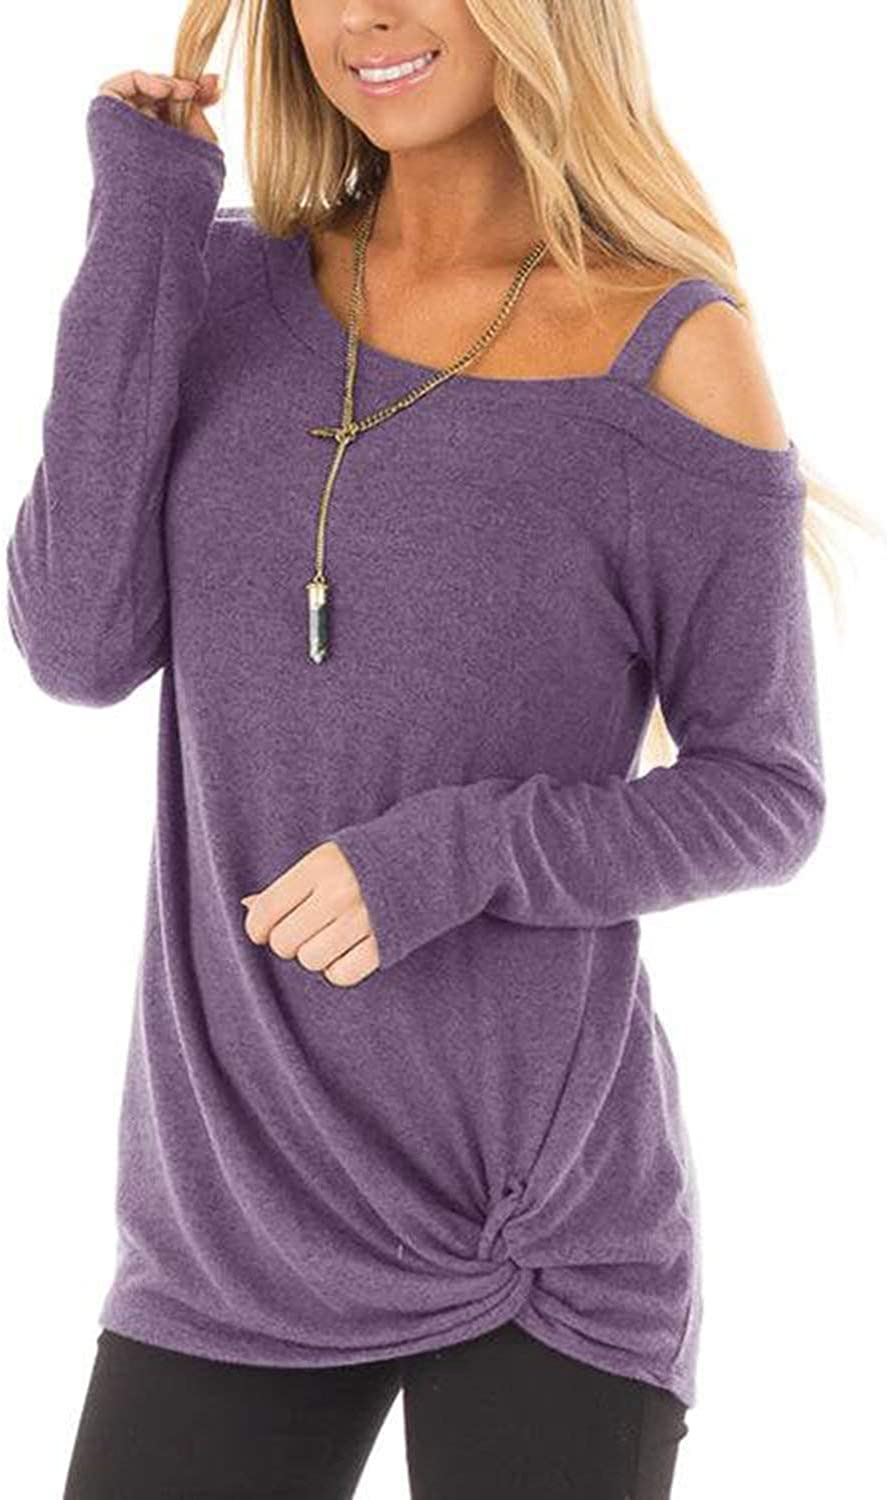 AELSON Women's Cold Shoulder Long Sleeve Shirts Front Twist Knot Casual Tunic Tops